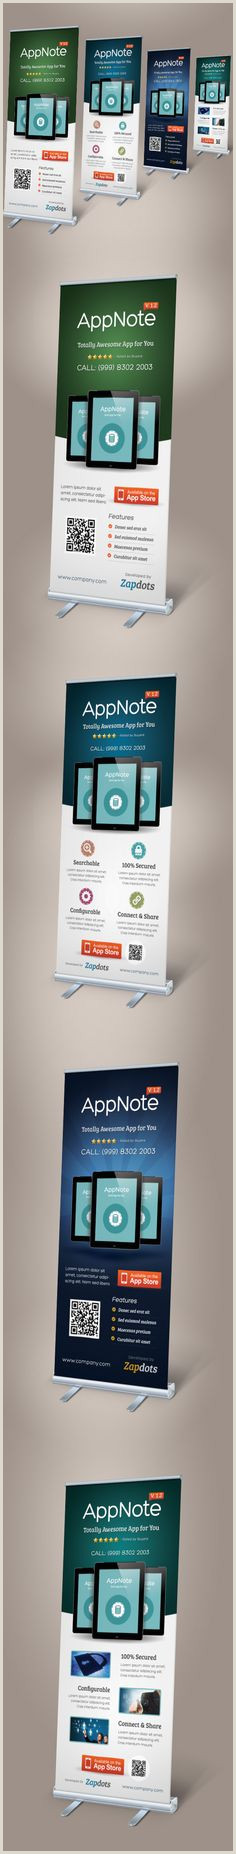 Roll Up Sign Stand 40 Mejores Imágenes De Roll Up Banner